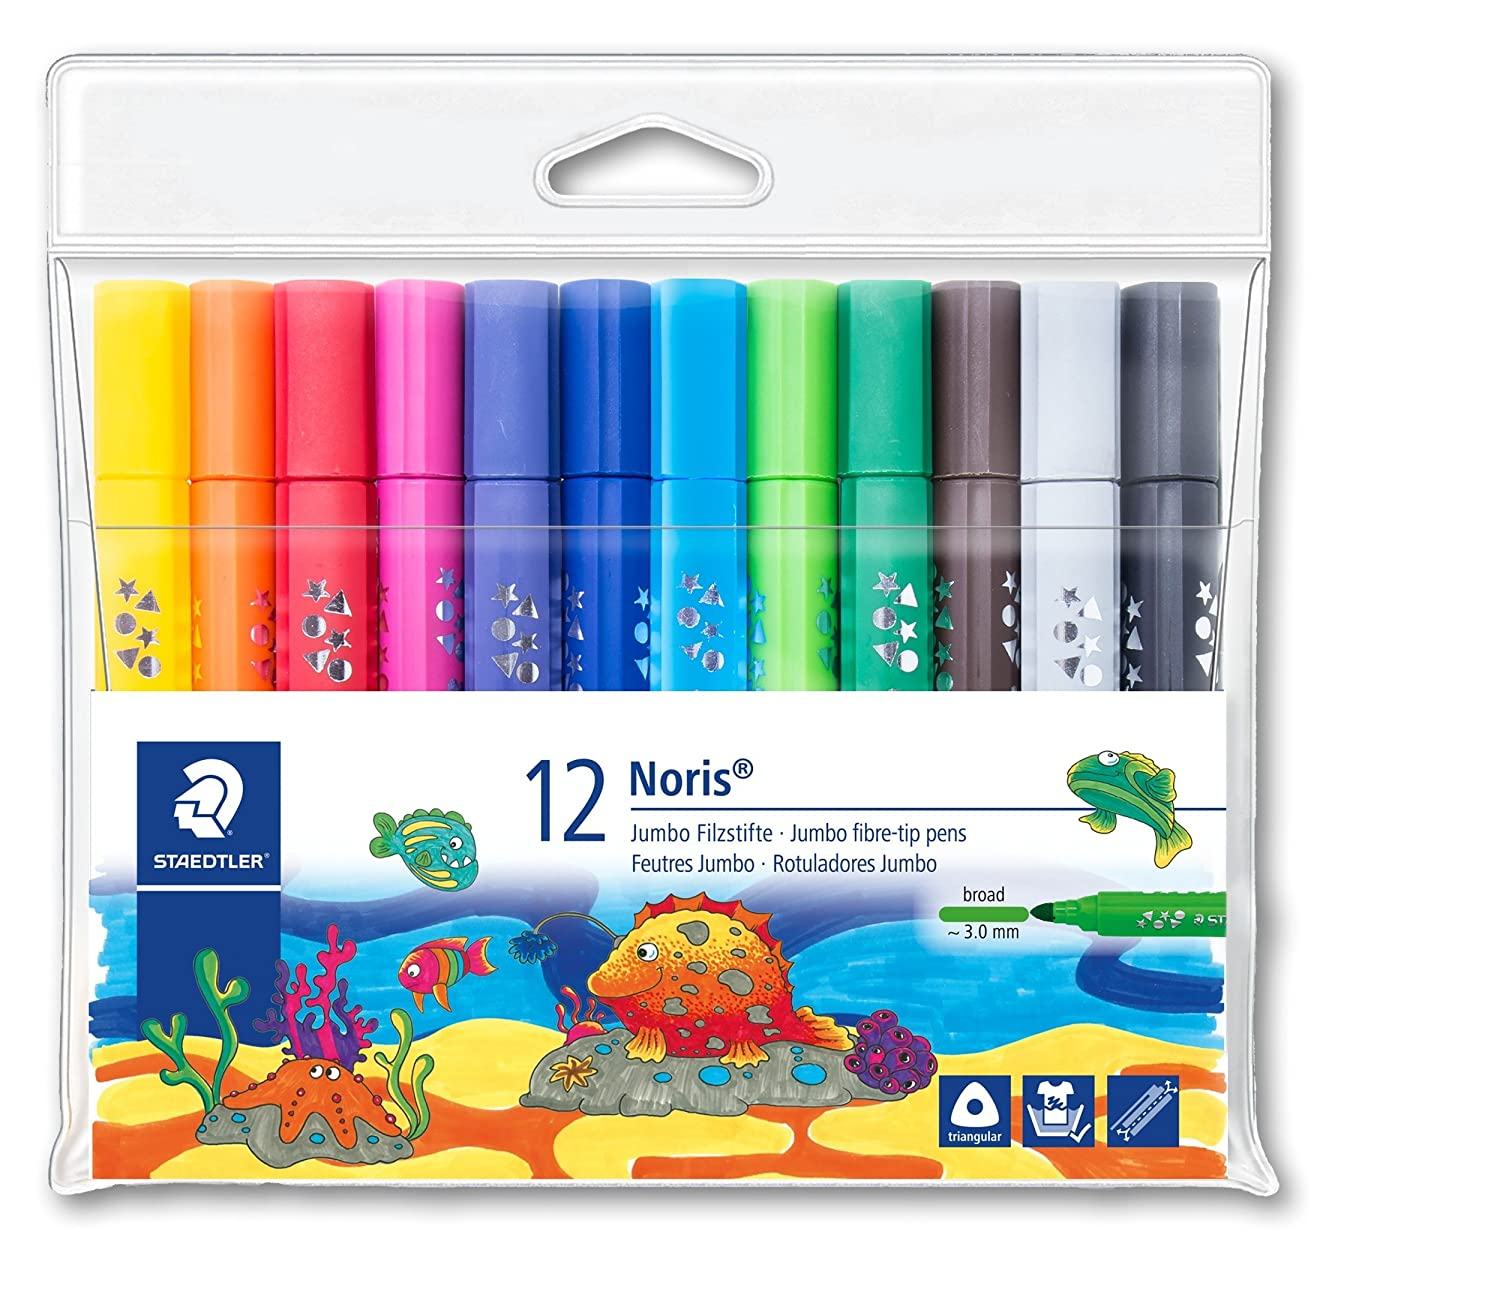 Staedtler 328-b WP12 Noris triangolare – Pennarello, colori assortiti STAEDTLER UK 328-B WP12ST